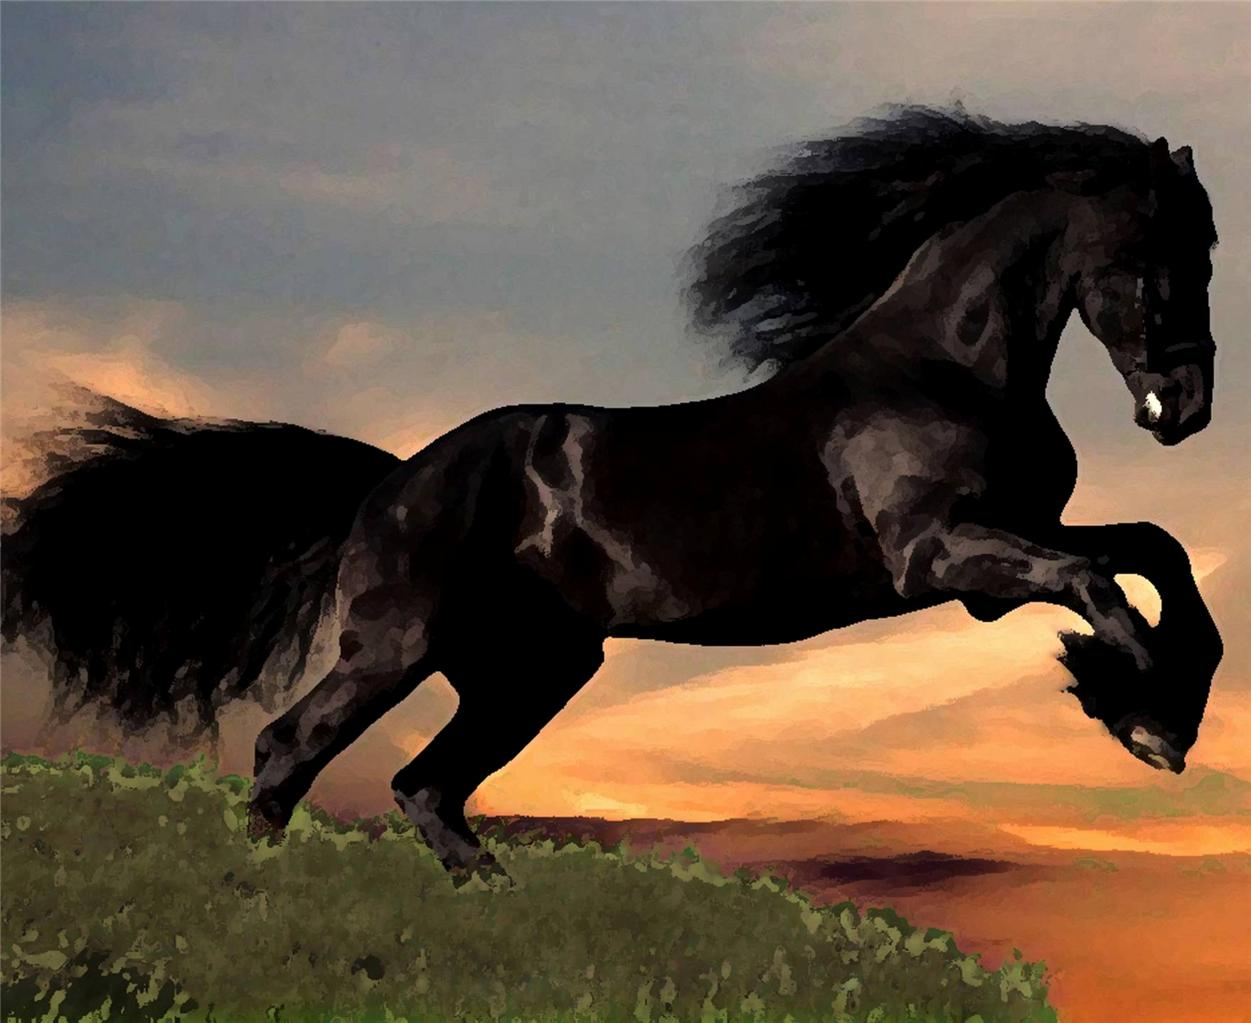 Majestic Friesian Horse Rearing Great High Quality